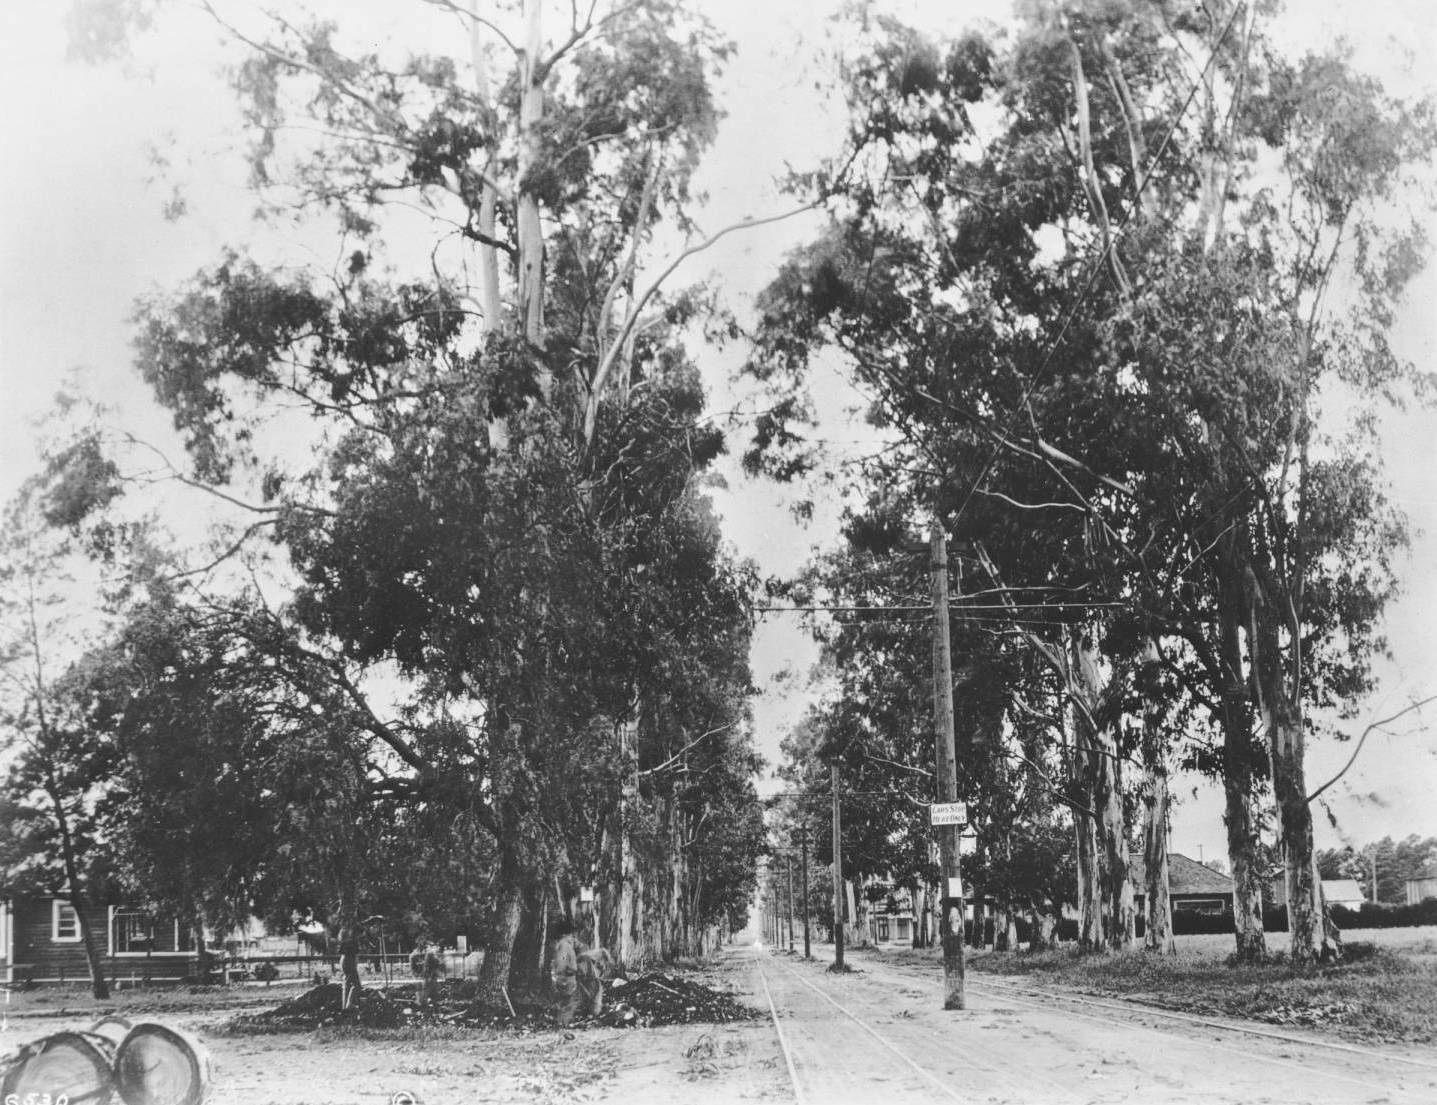 In 1906, Santa Monica Boulevard (seen here at Western Avenue in Colegrove) was little more than a narrow rail right-of-way doubling as a dirt road. Courtesy of the USC Libraries - California Historical Society Collection.